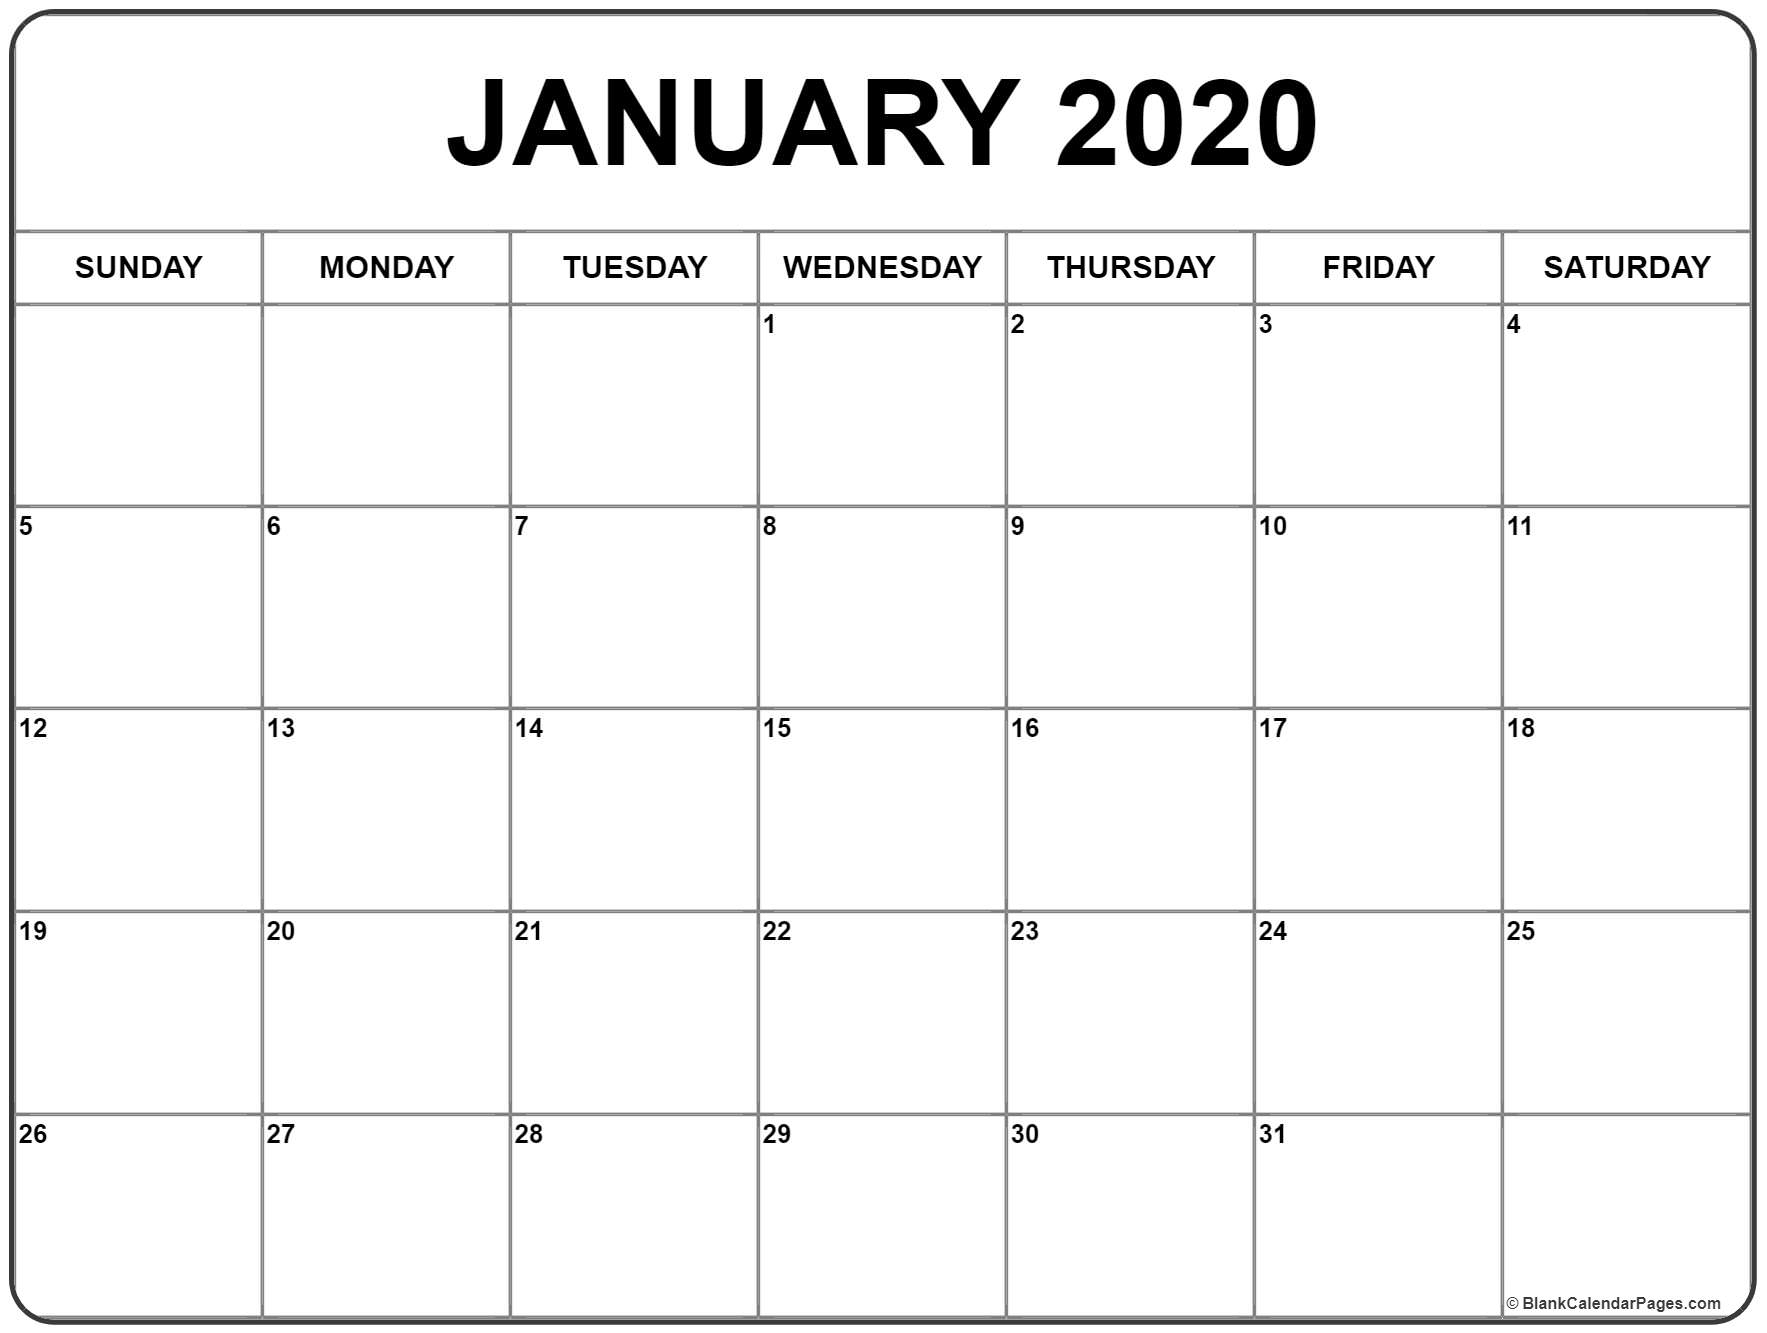 January 2020 Calendar | Free Printable Monthly Calendars regarding 2020 Free Printable Calendars Without Downloading